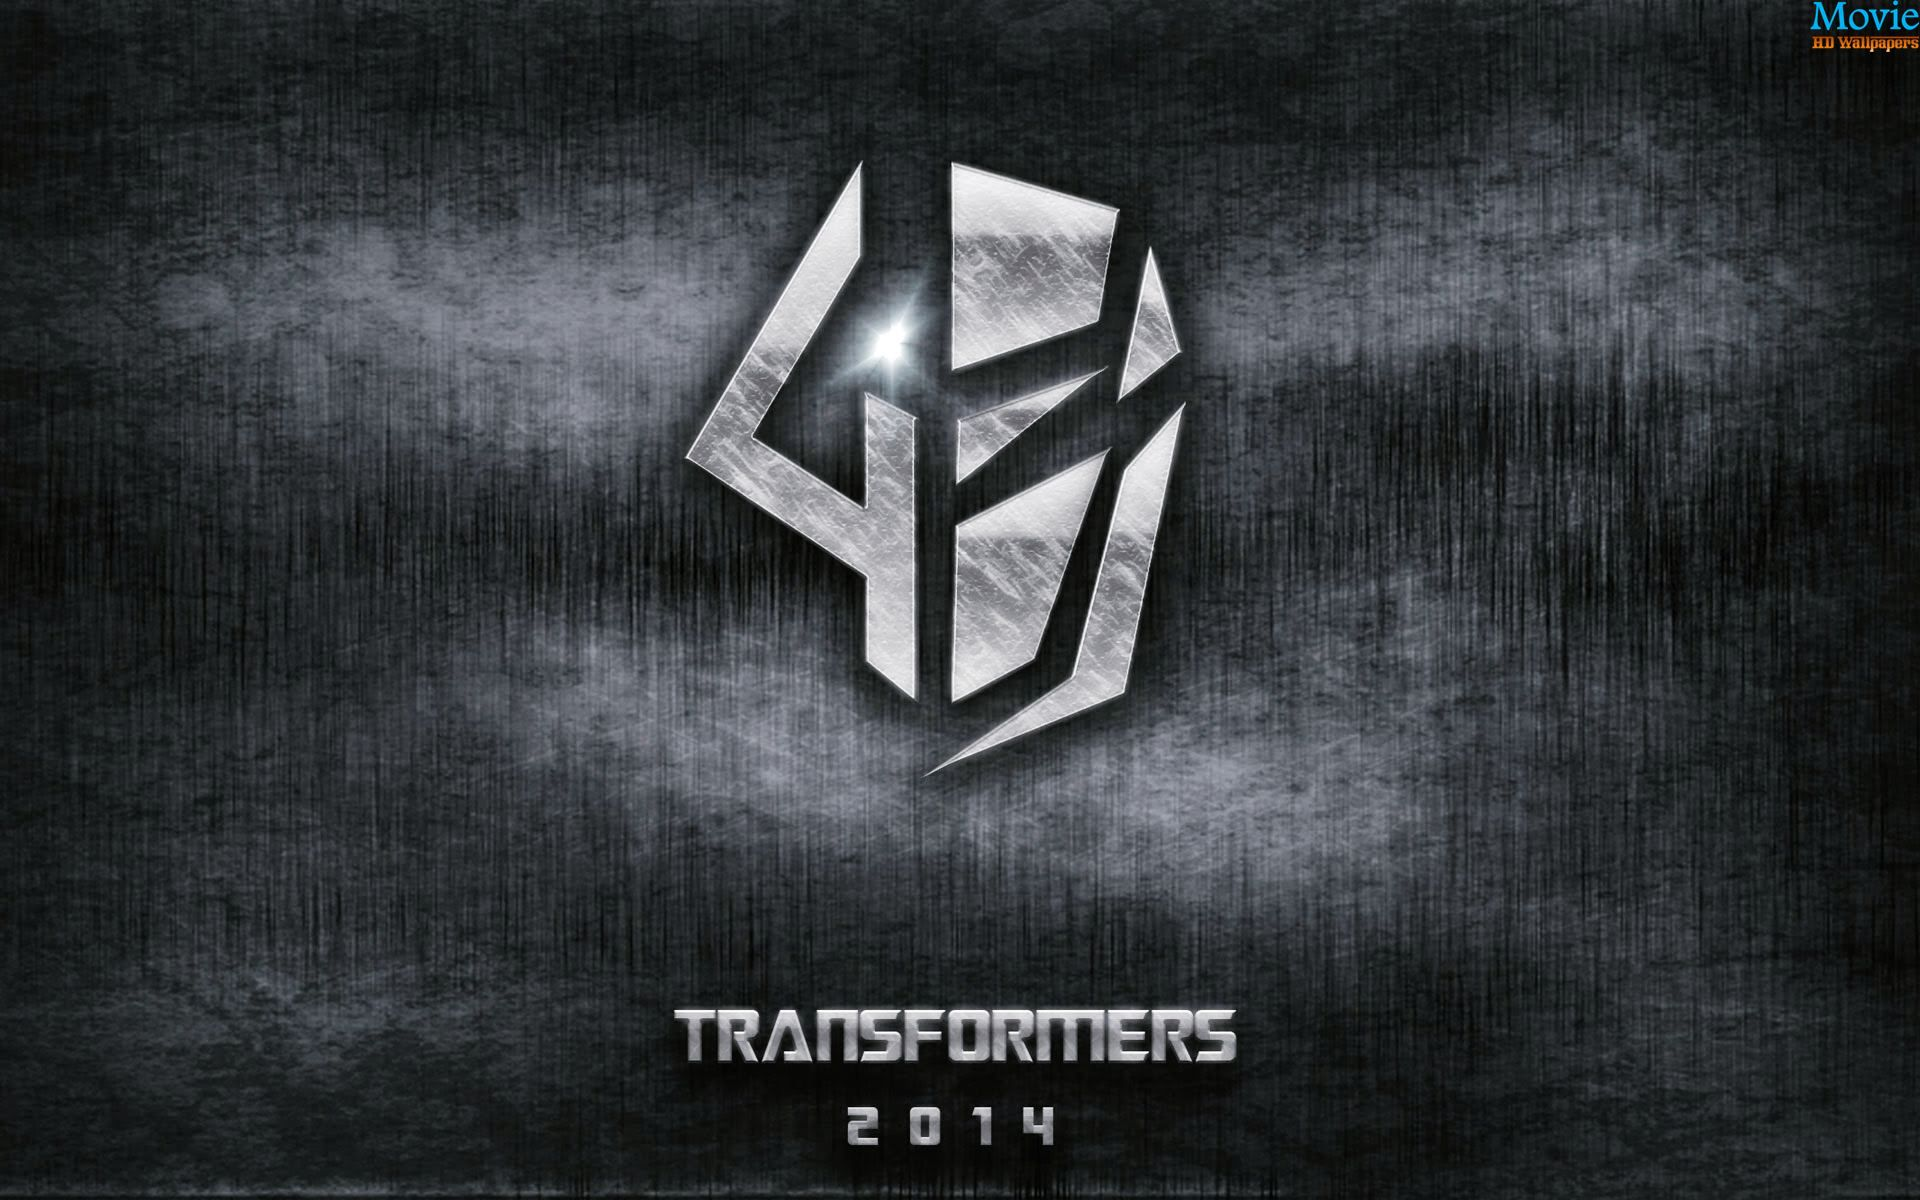 Transformers: Age of Extinction - Movie HD Wallpapers Freightliner Argosy Galvatron